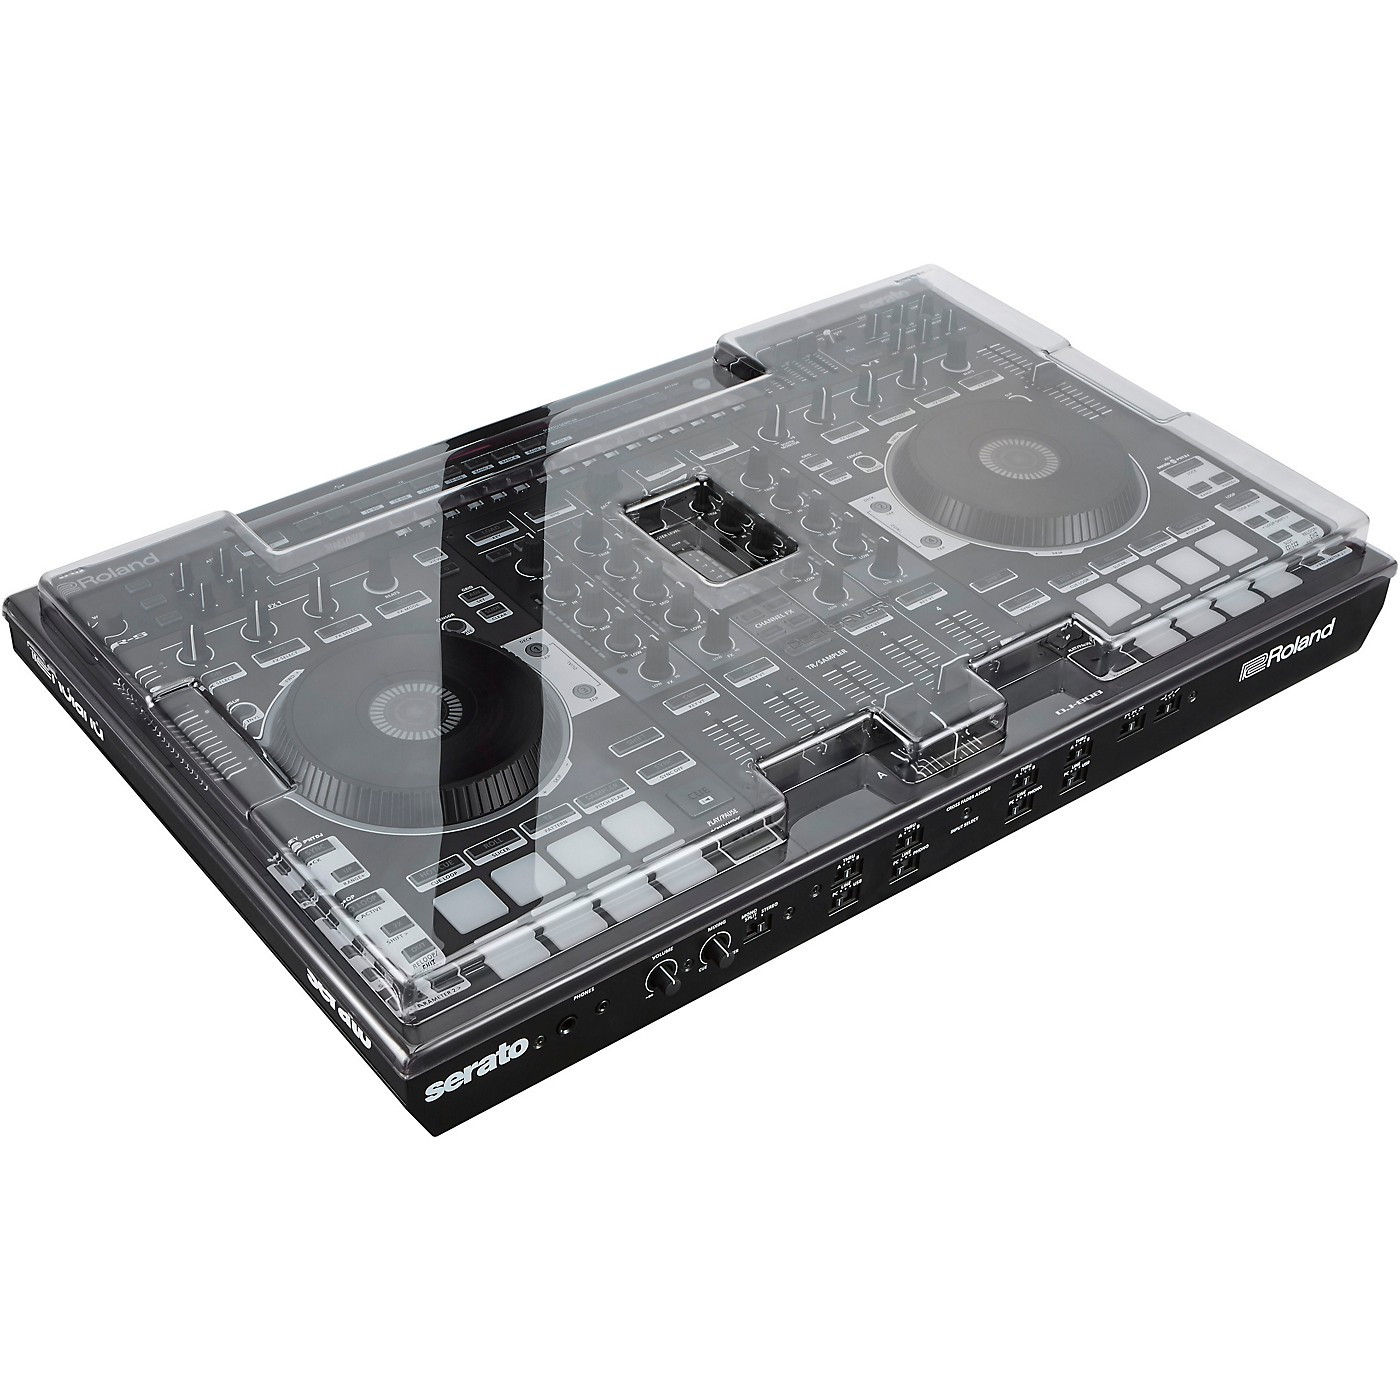 Decksaver Clear Polycarbonate Protective Cover for Roland DJ-808 Controller thumbnail